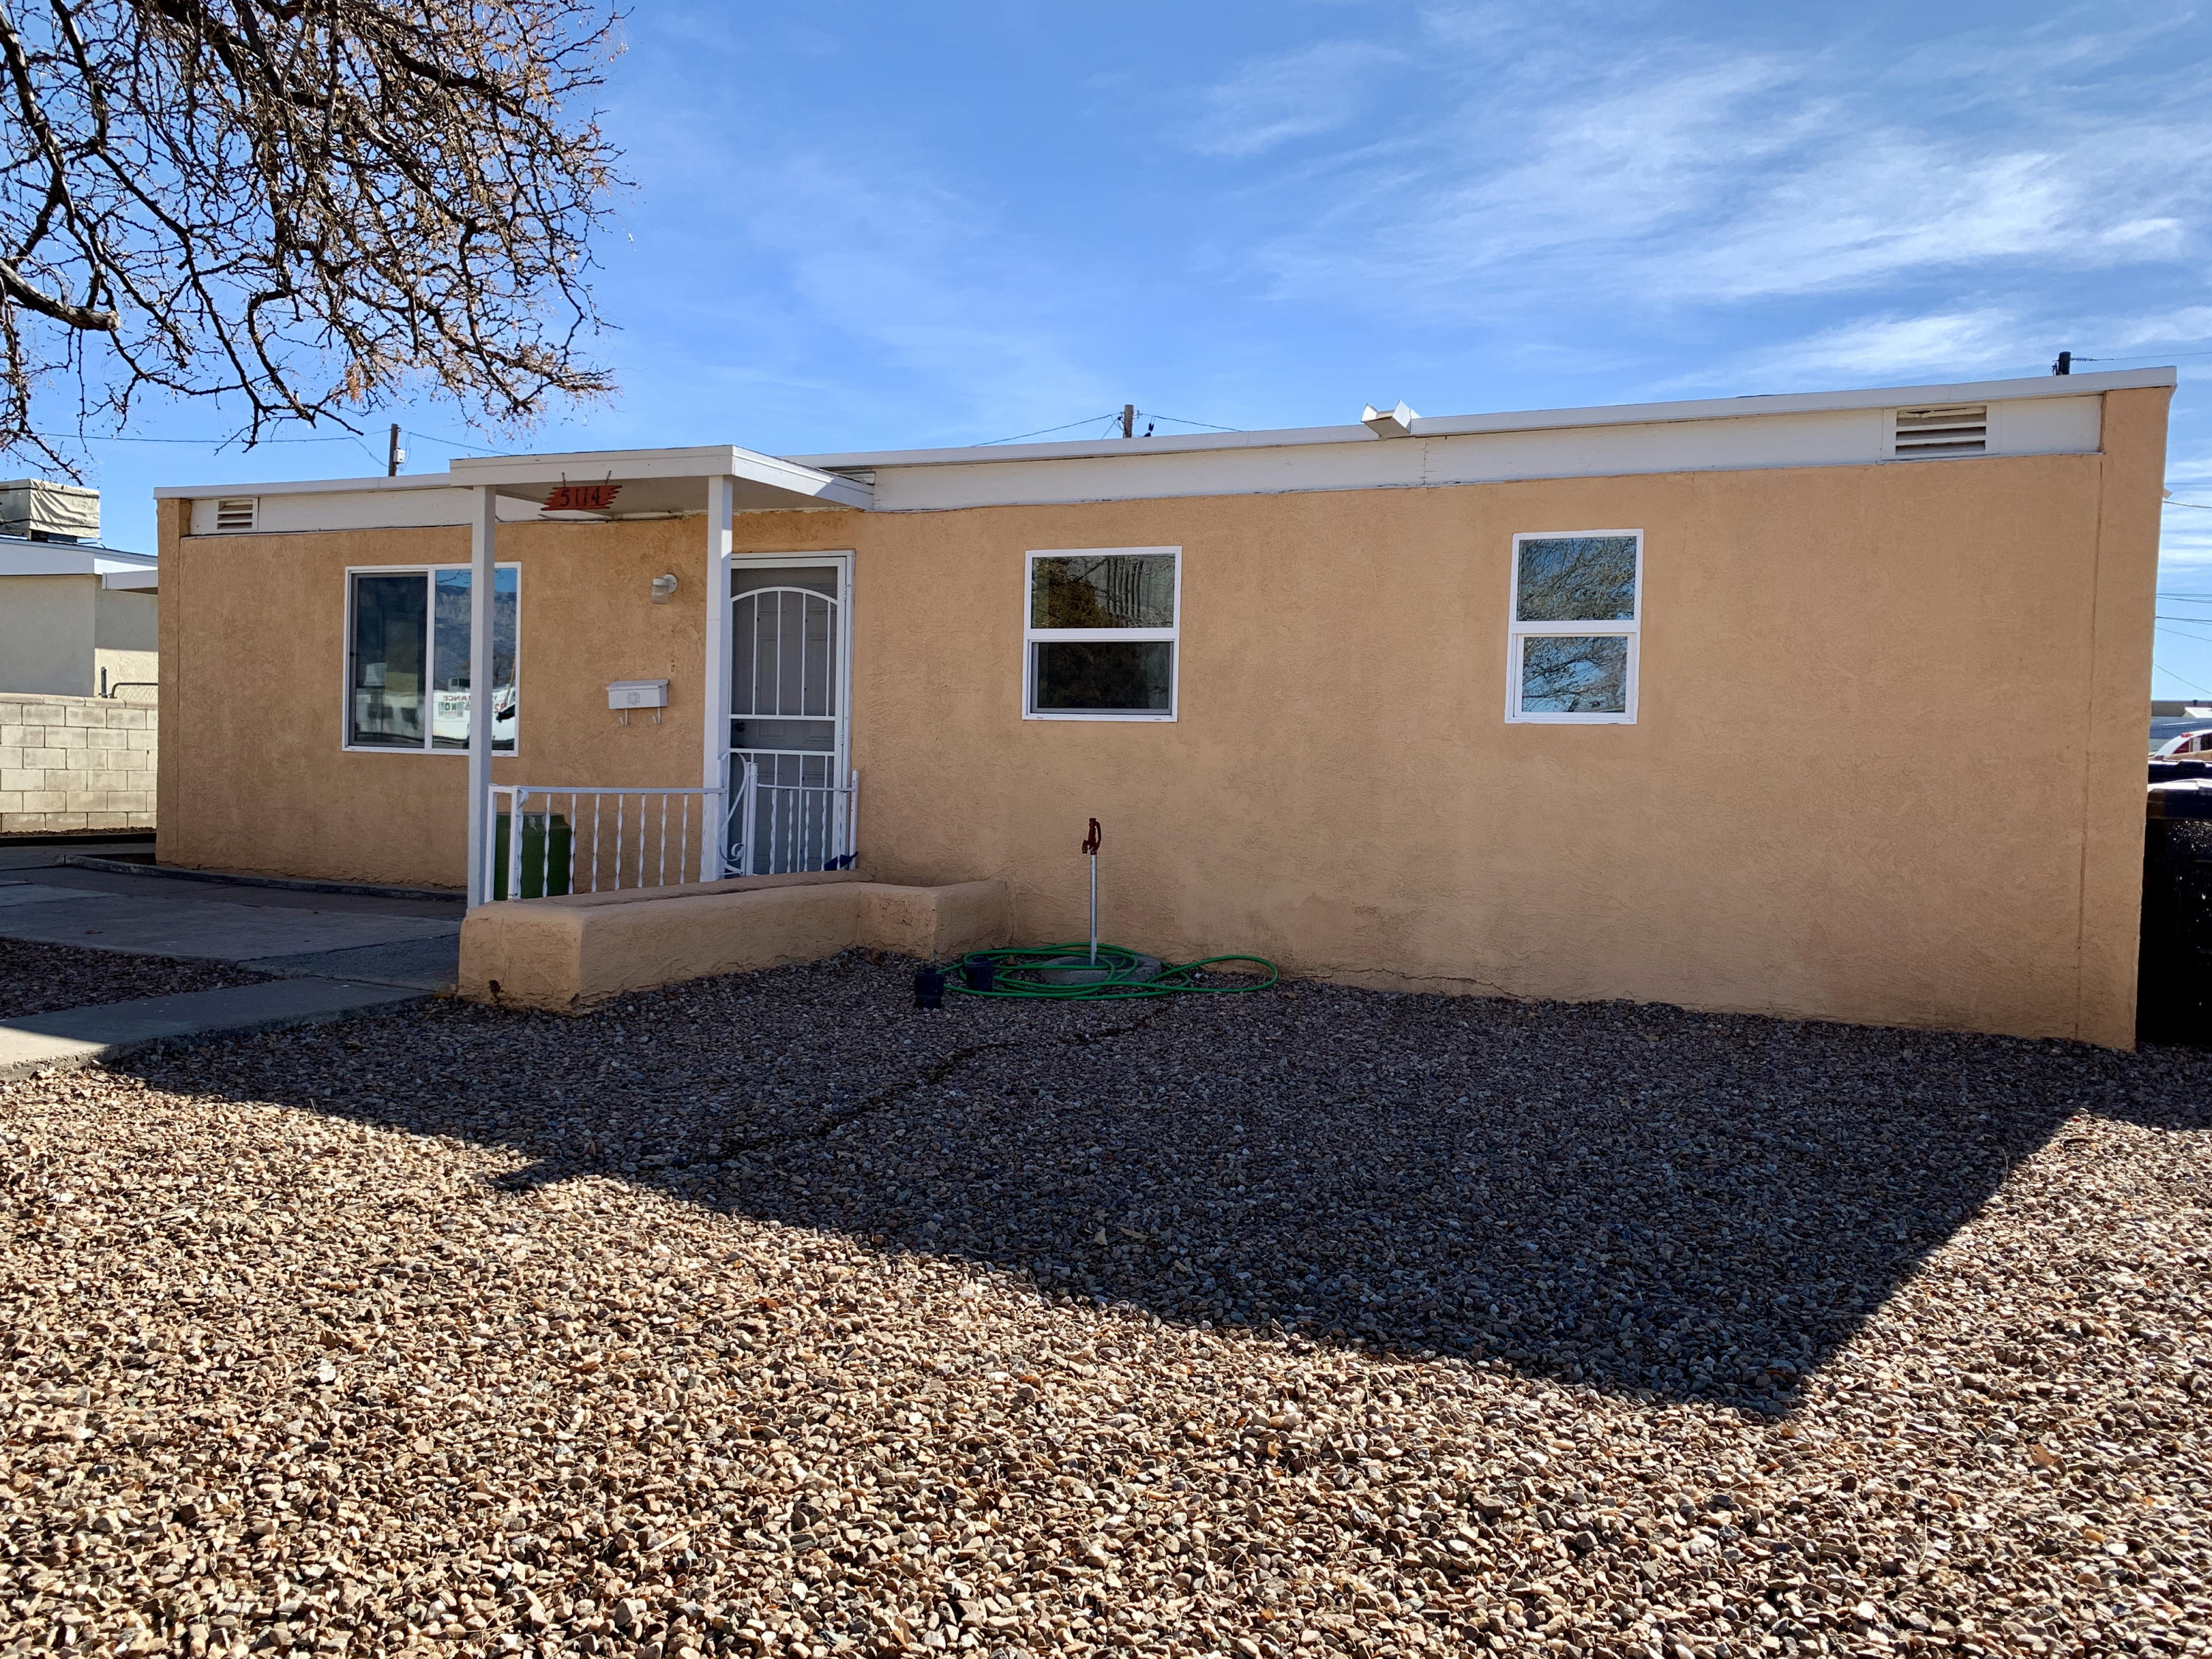 Amazing home with so many recent upgrades. Newer Roof, HVAC, windows, electrical panel and water heater. Remodeled master suite and bath are exquisite. Few houses from Villela Park & Pickleball Courts. This will be a great home!